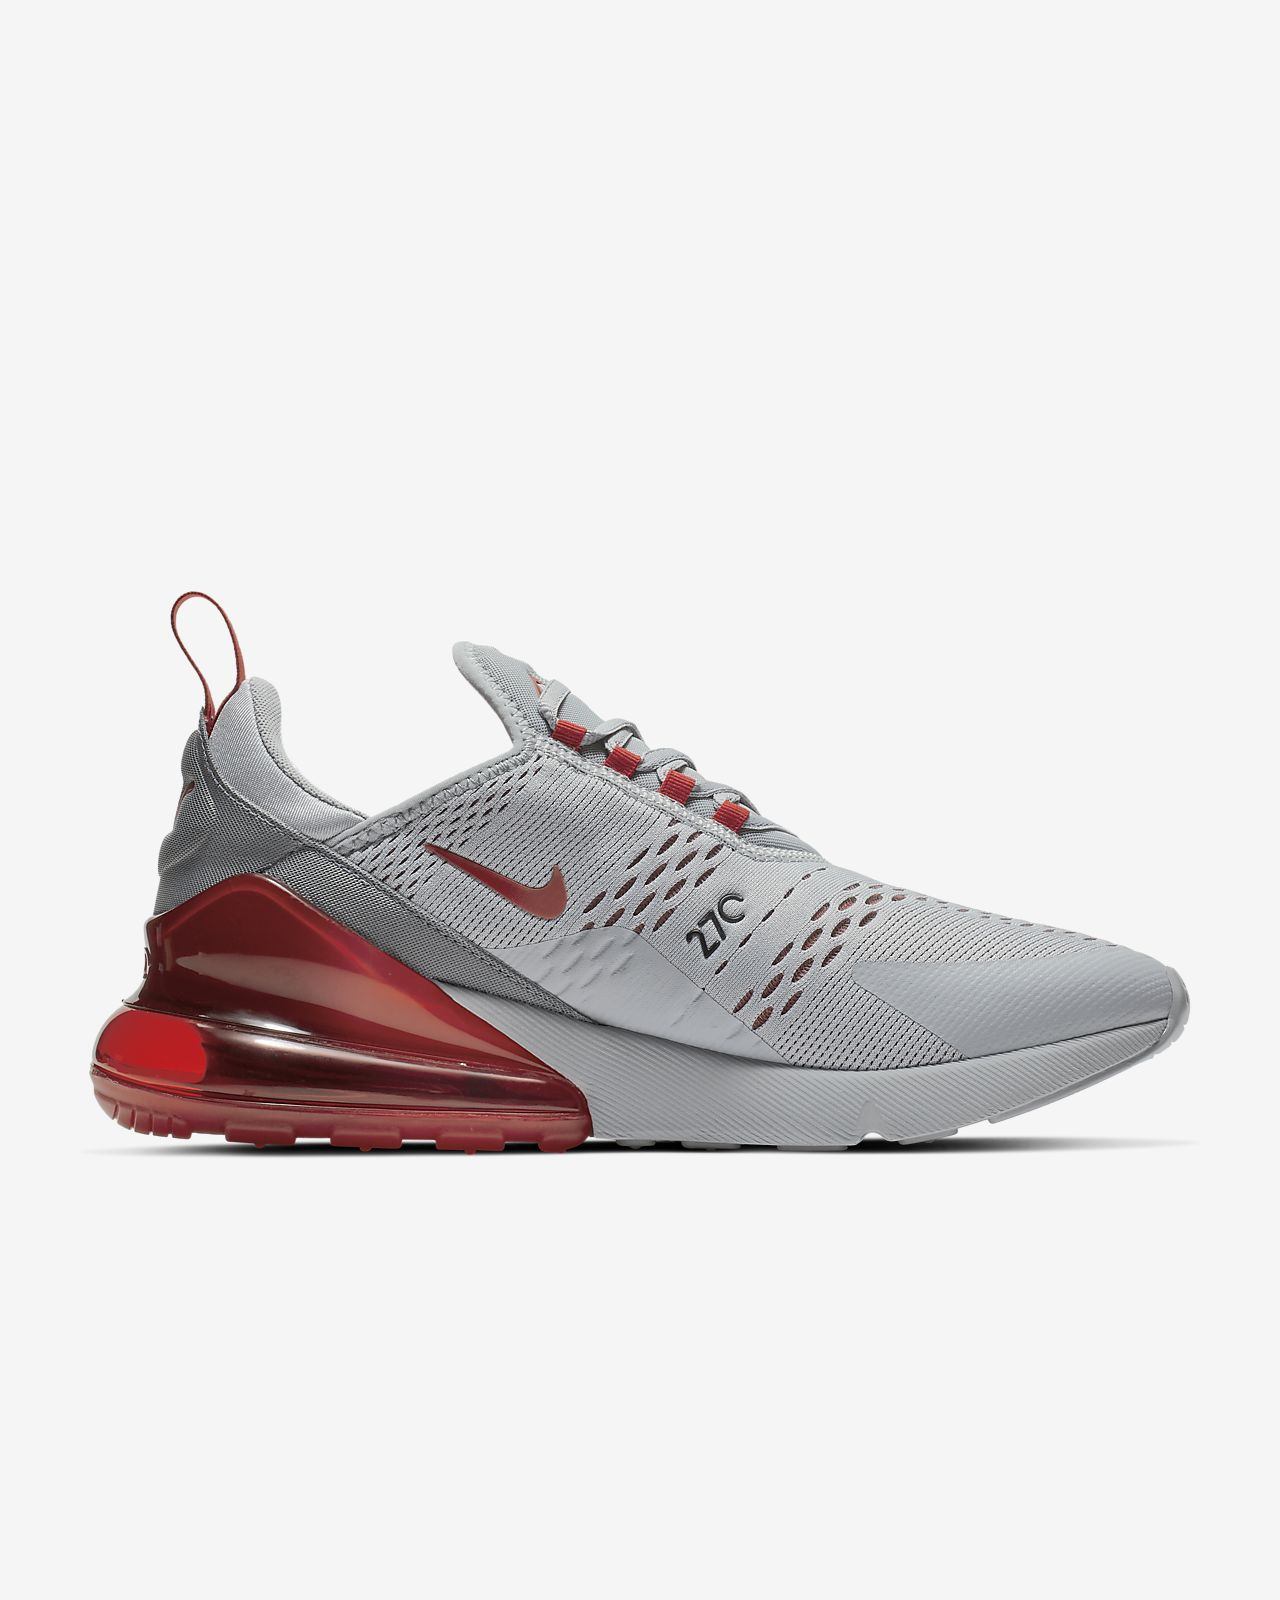 lowest price 06bb2 ddb0c ... Nike Air Max 270 Men s Shoe